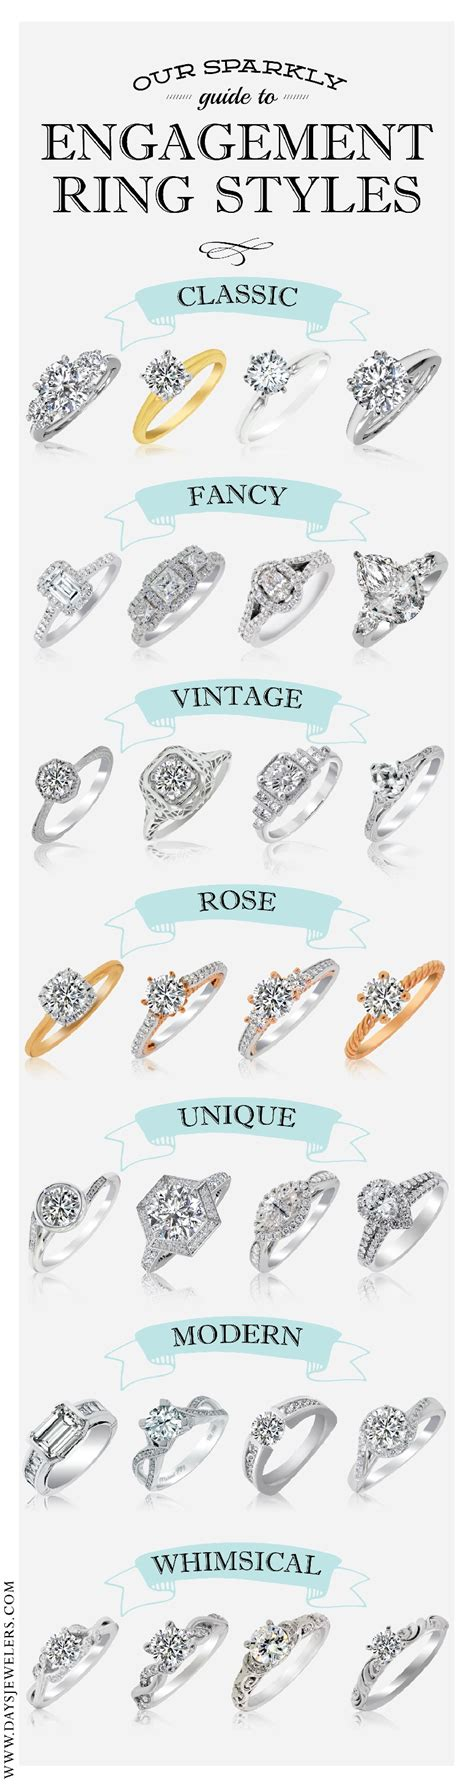 wedding ring styles guide engagement ring jewelry 201 jewelry